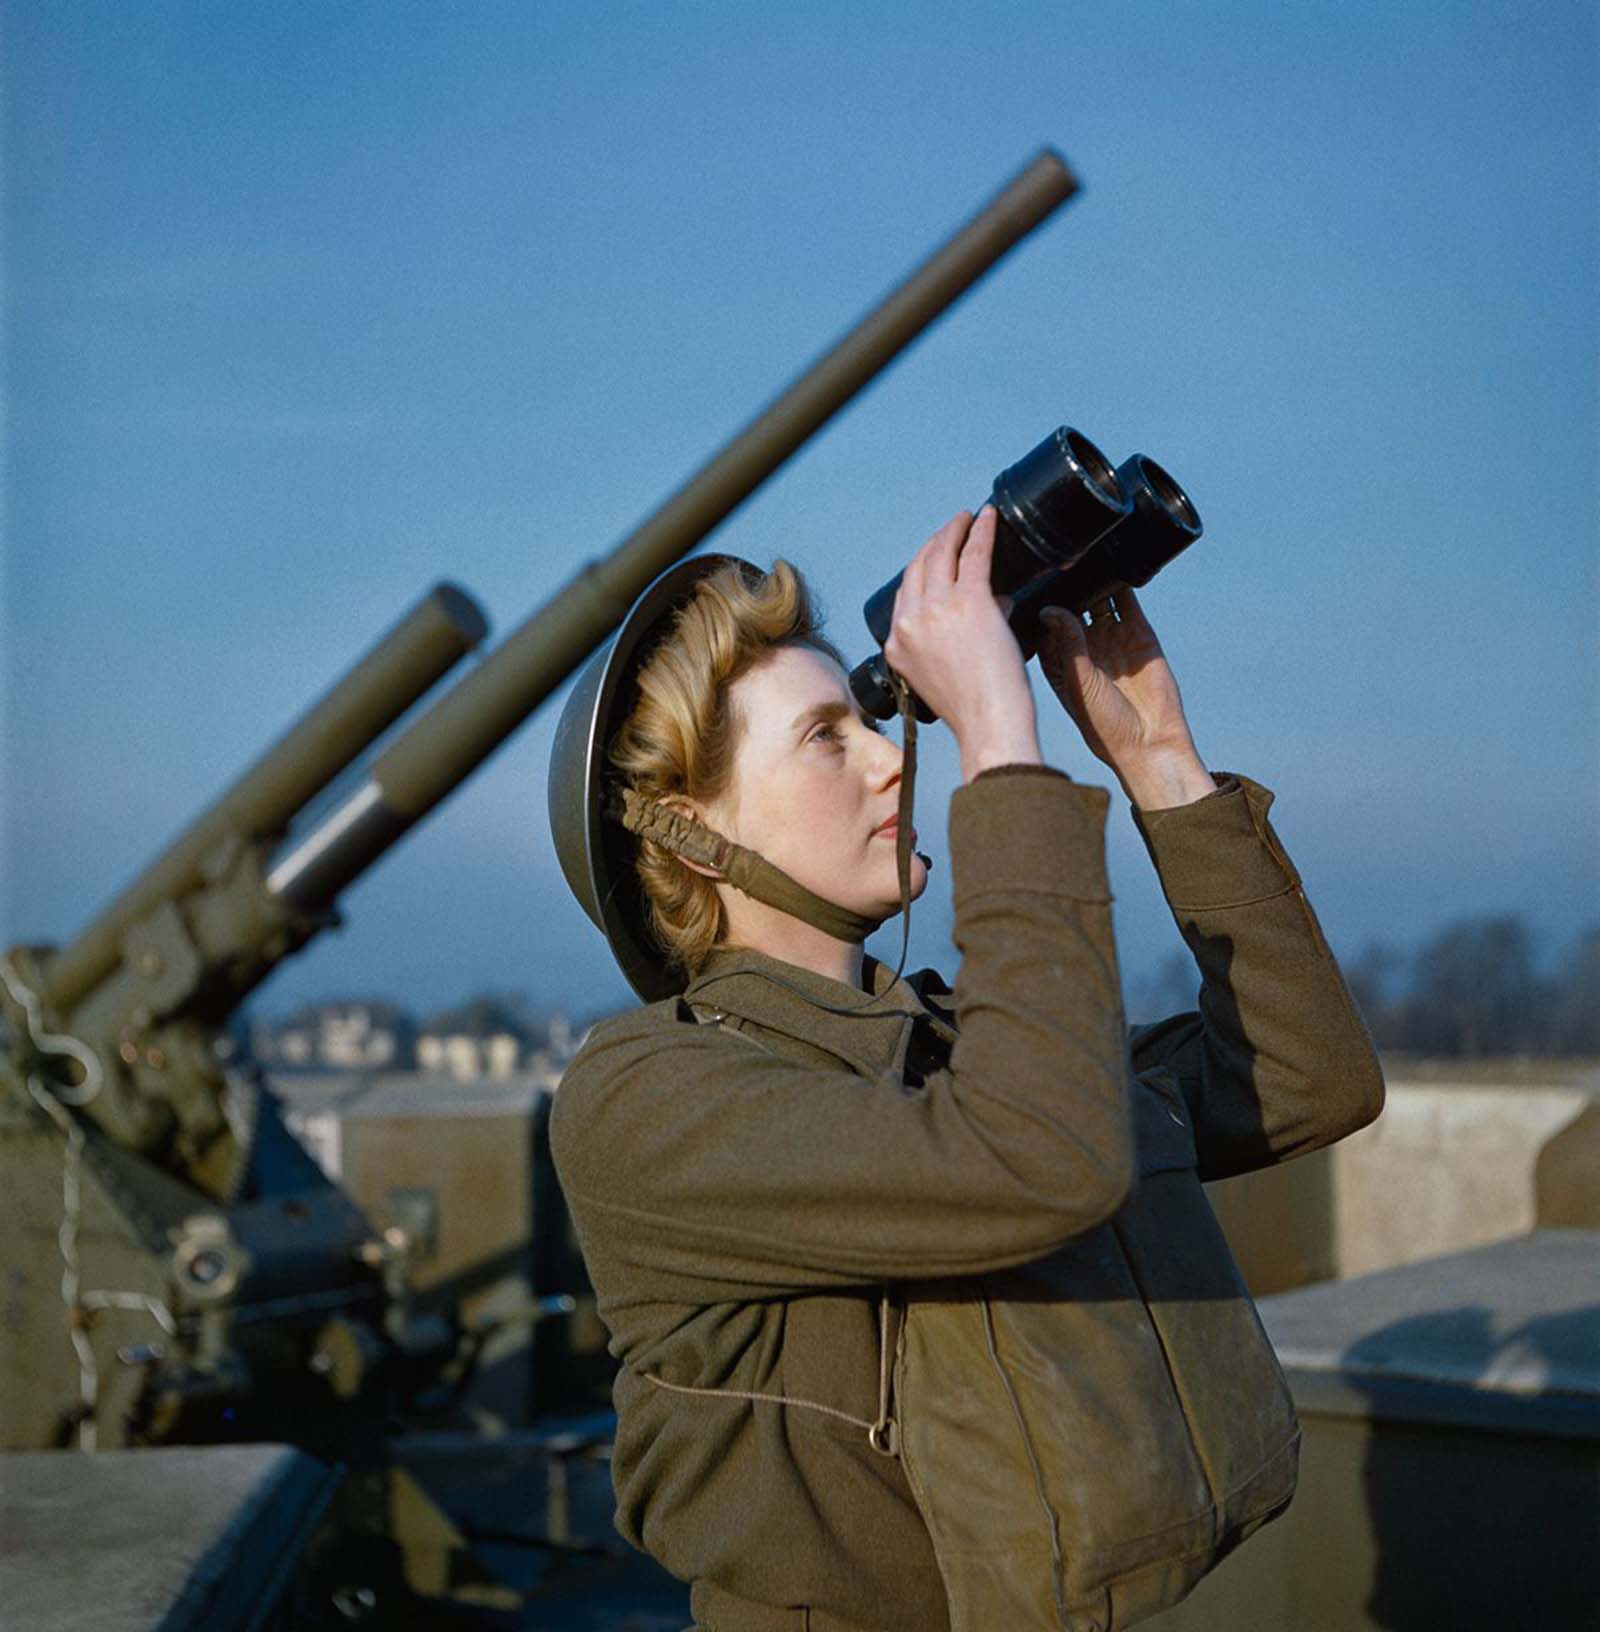 An Auxiliary Territorial Service (ATS) 'spotter' at a 3.7-inch anti-aircraft gun site. 1942.